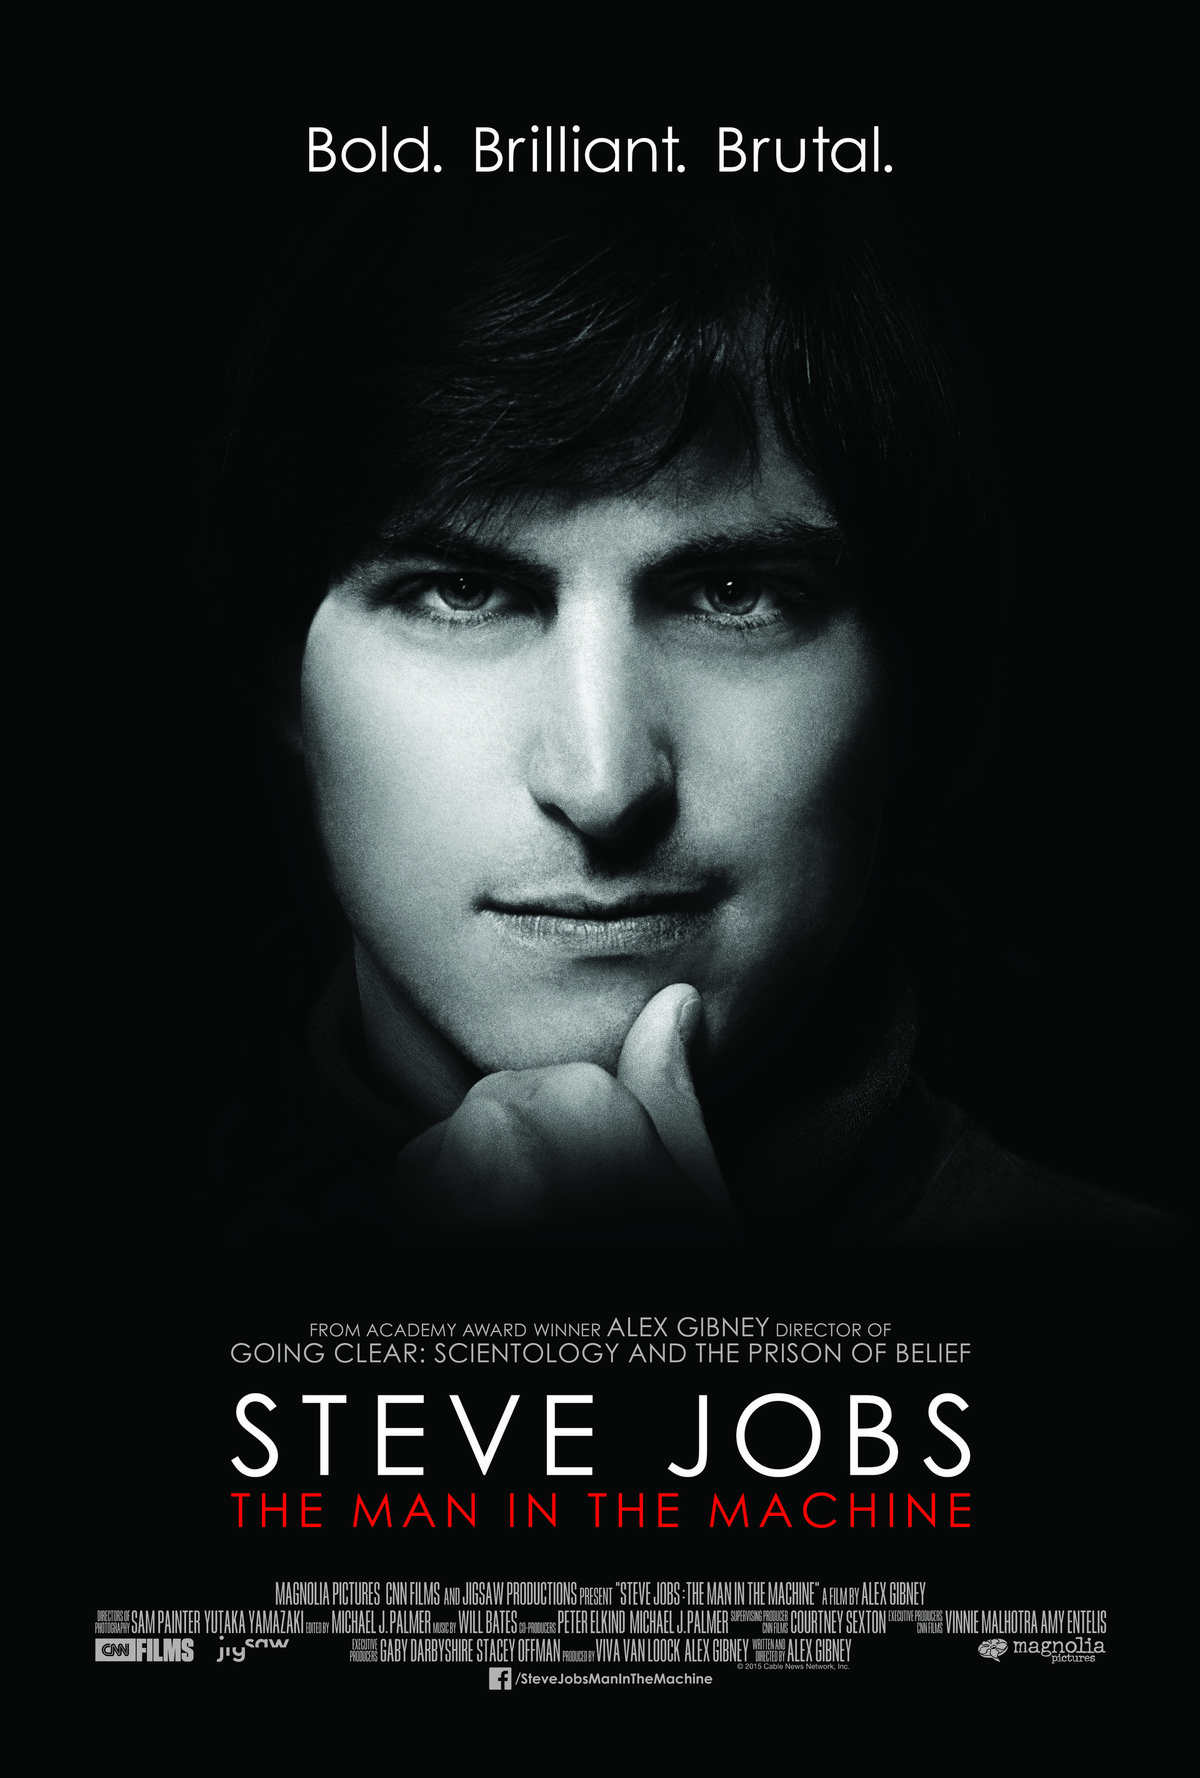 Steve Jobs The Man in the Machine poster 002